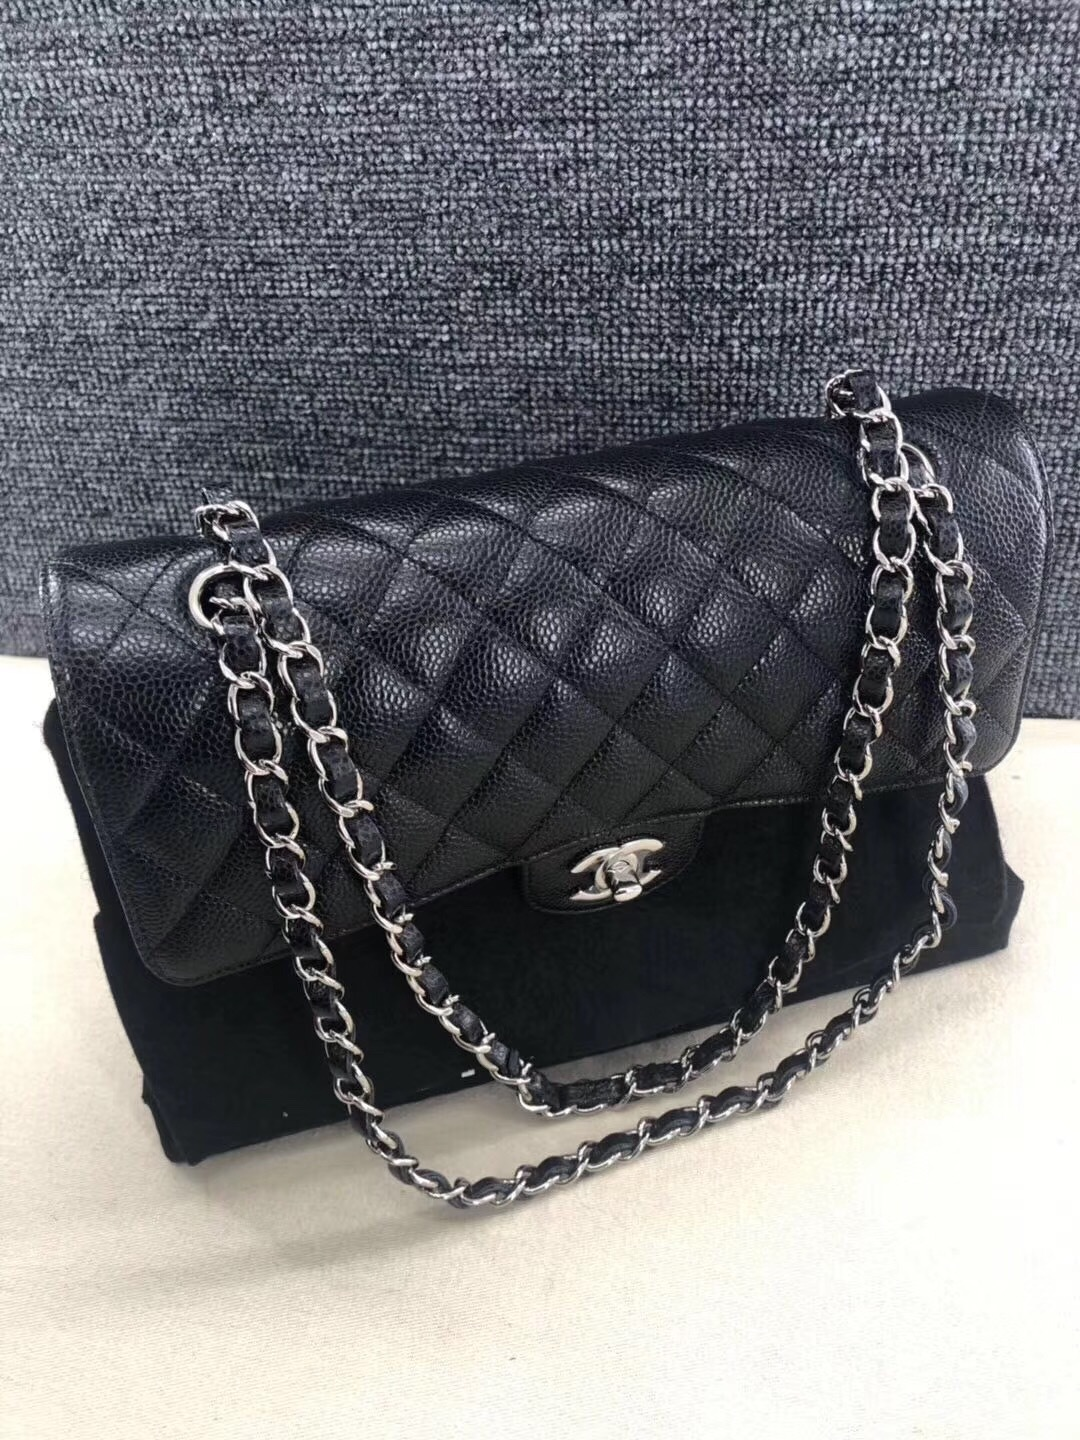 AUTH BNIB Chanel 2019 Black Quilted Caviar Classic Medium Double Flap Bag SHW